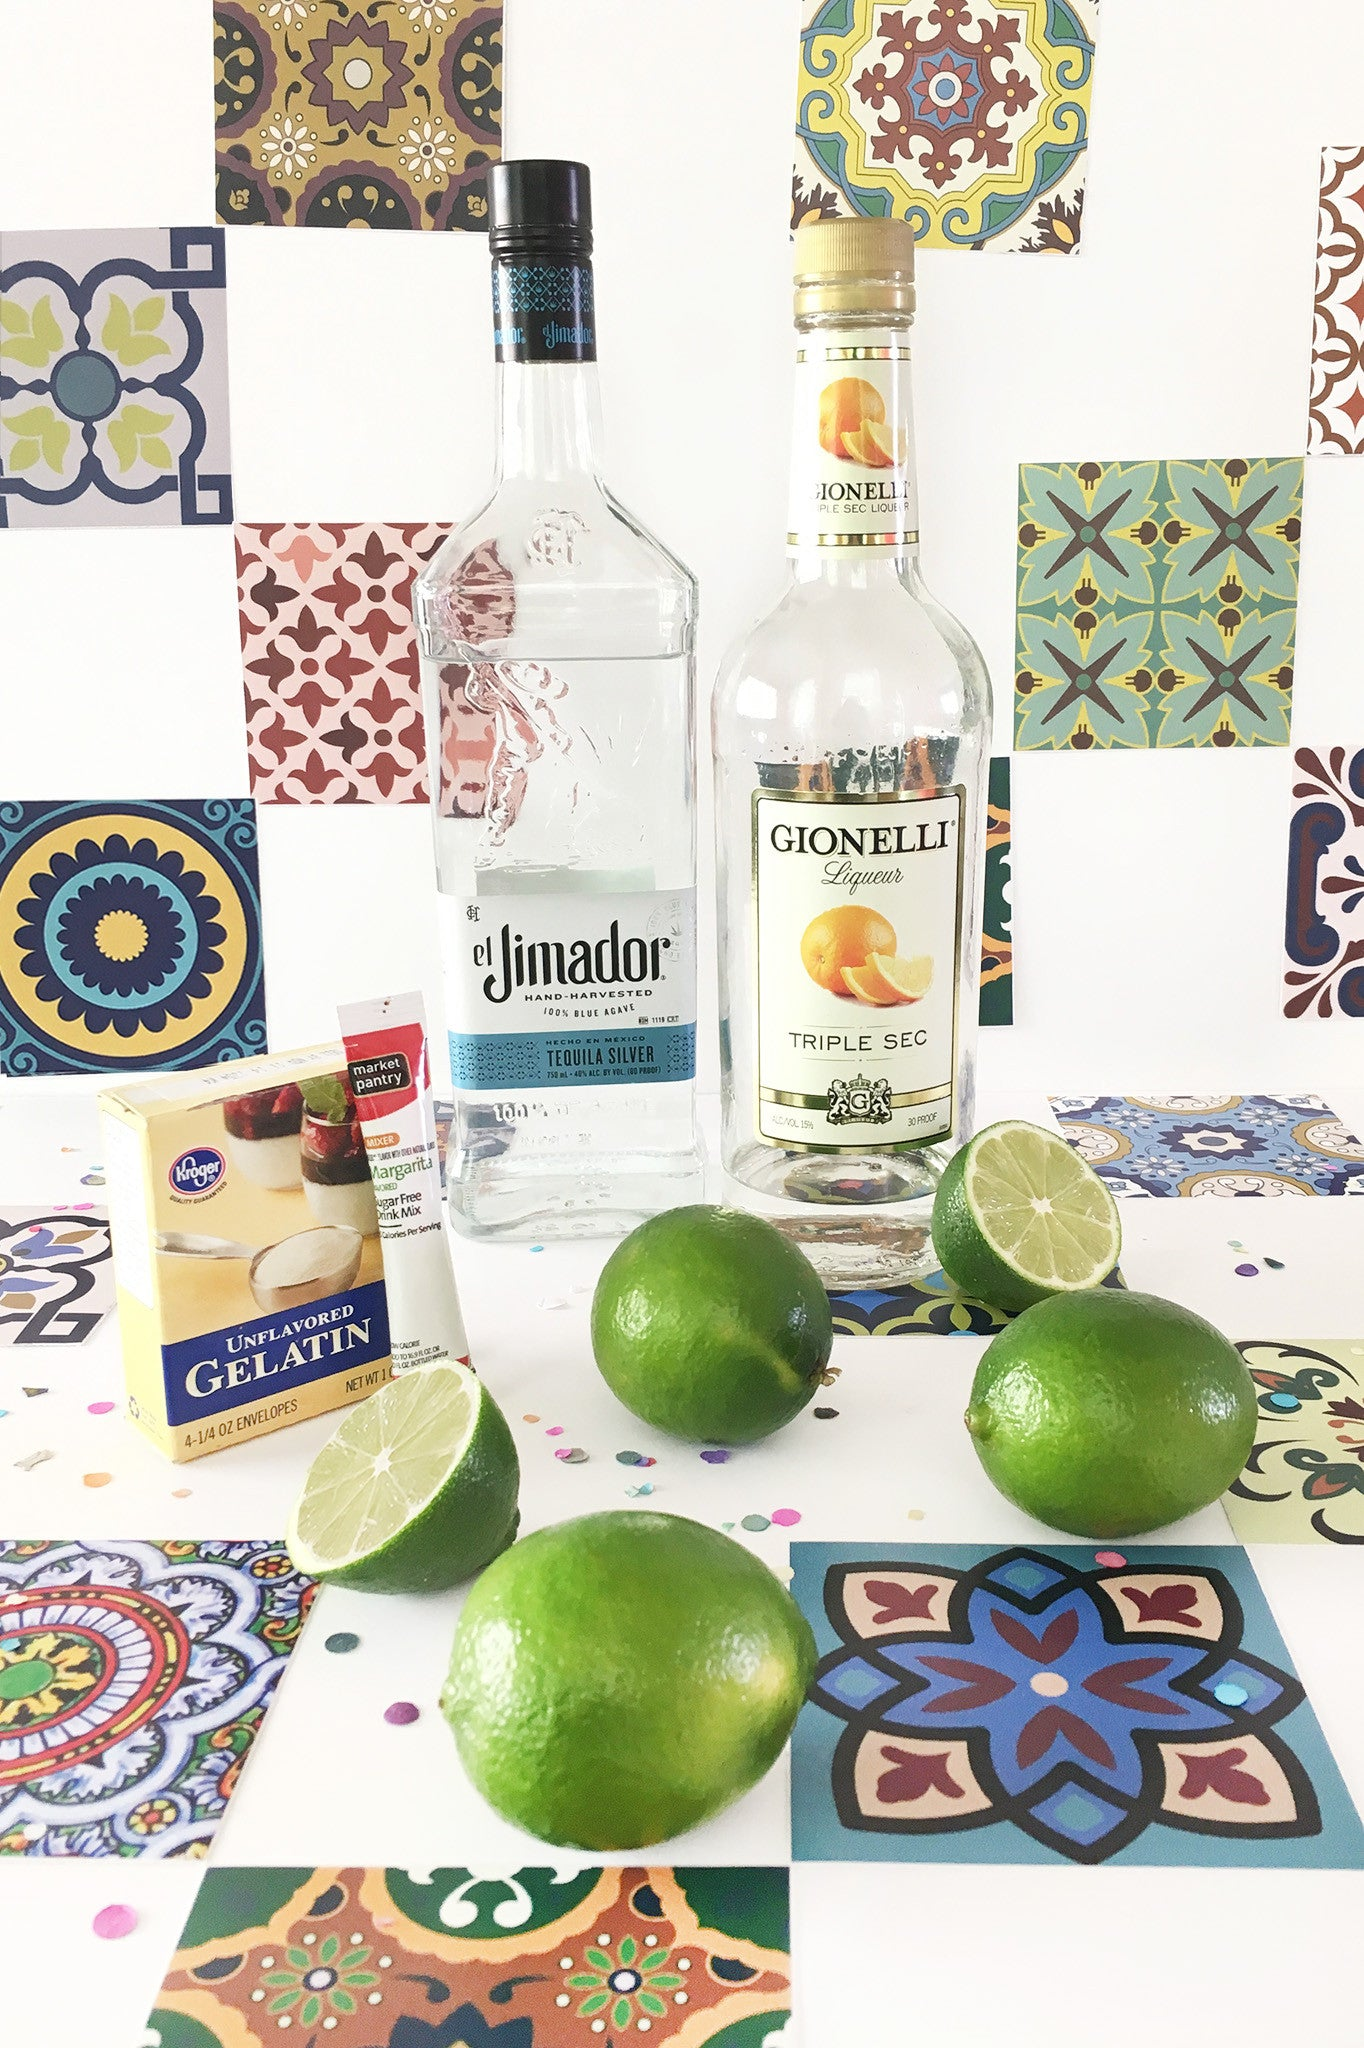 ShopMucho top shelf margarita lime wedge tequila jello shots recipe